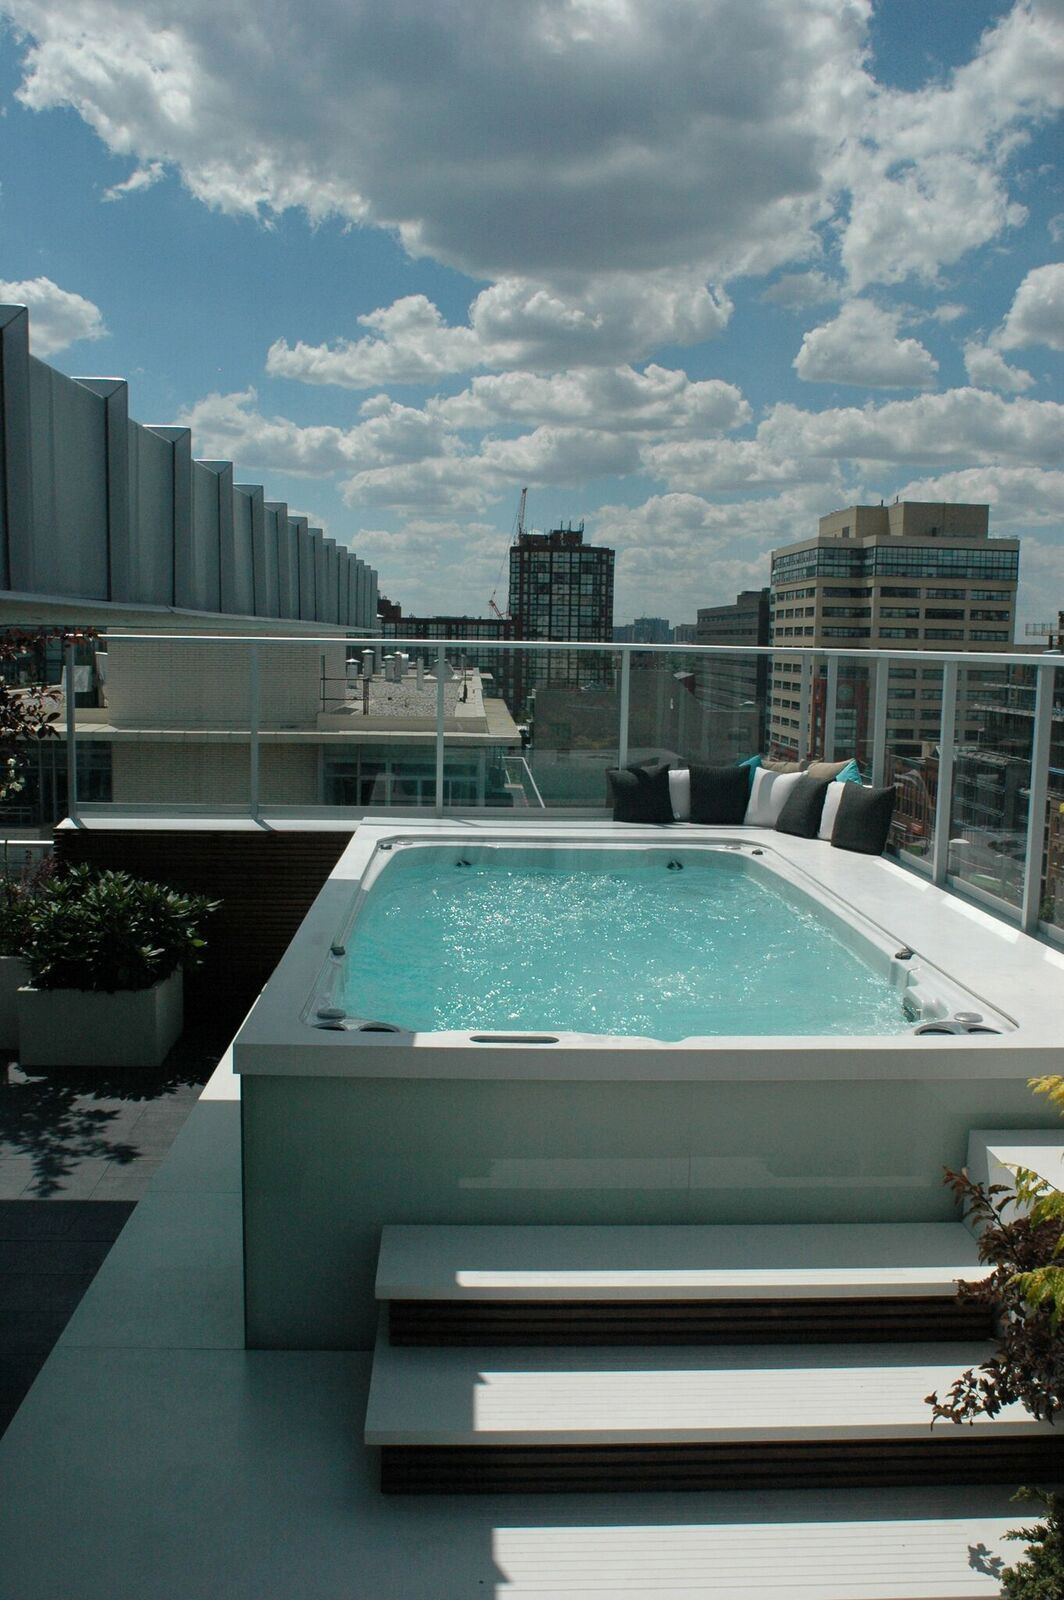 75 Beautiful Rooftop Pool Pictures Ideas July 2021 Houzz